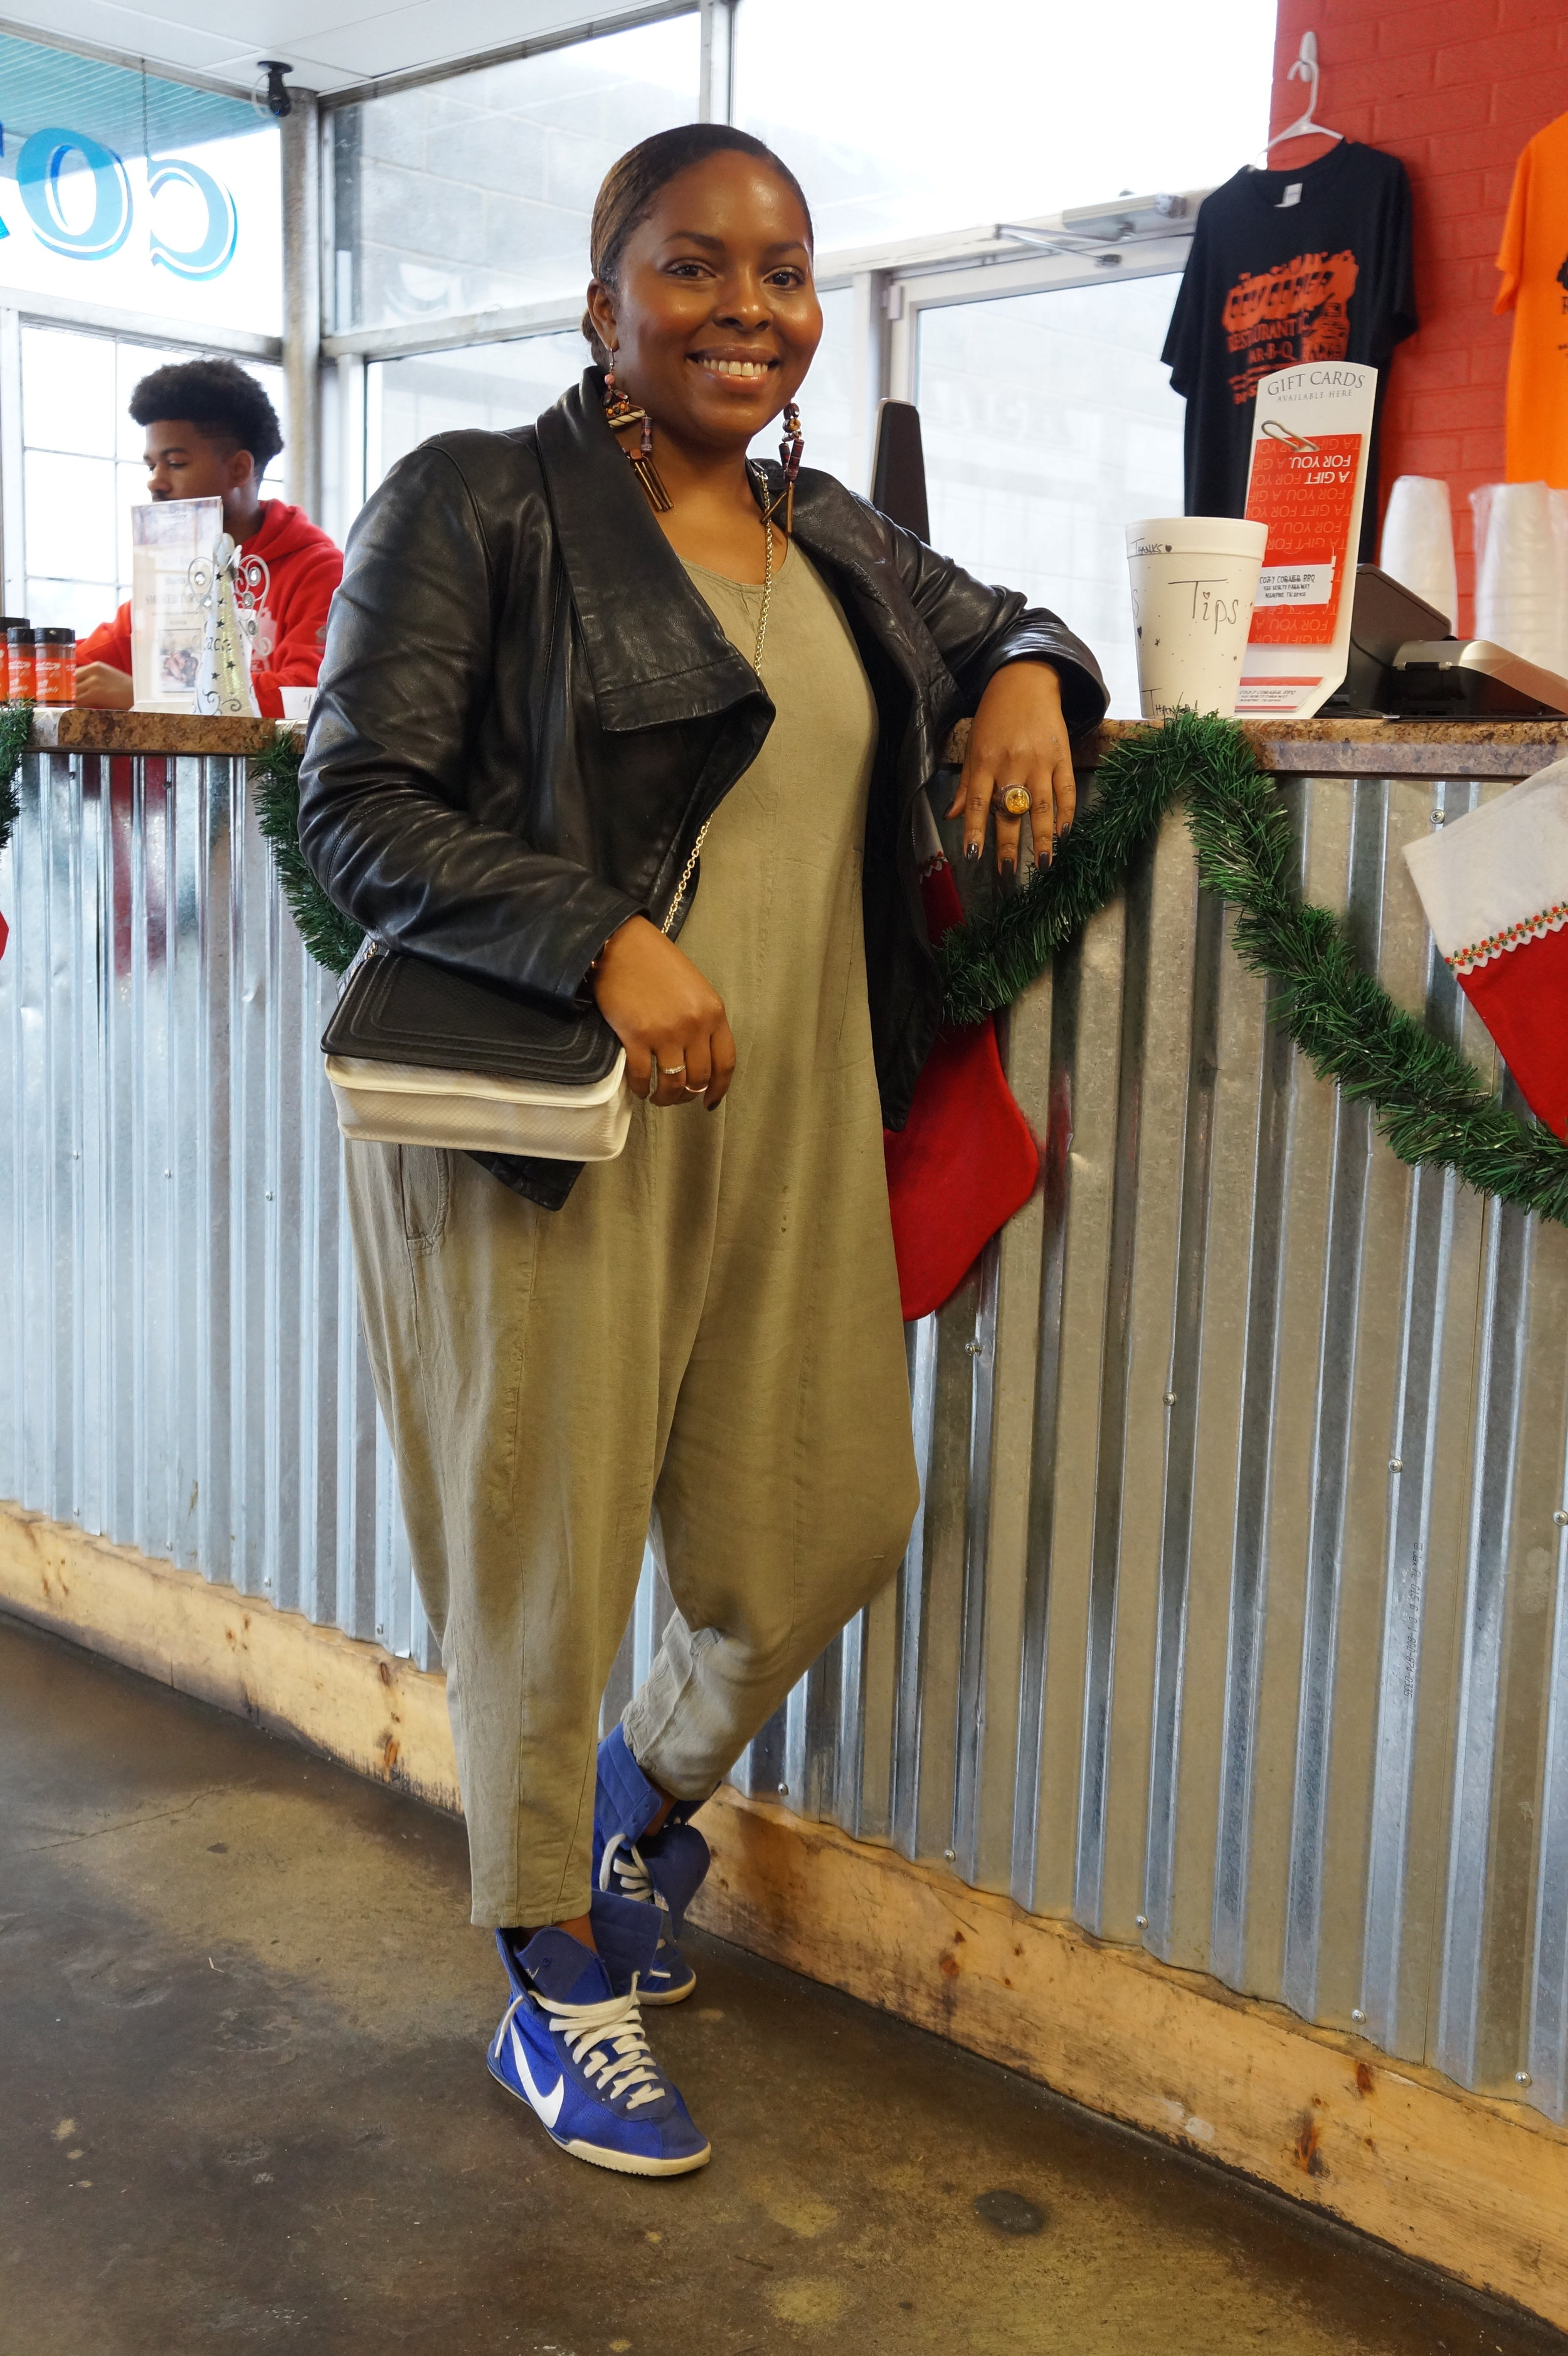 Andrea Fenise Memphis Fashion Blogger shares Eat with Style Series at Cozy Corner BBQ In Memphis